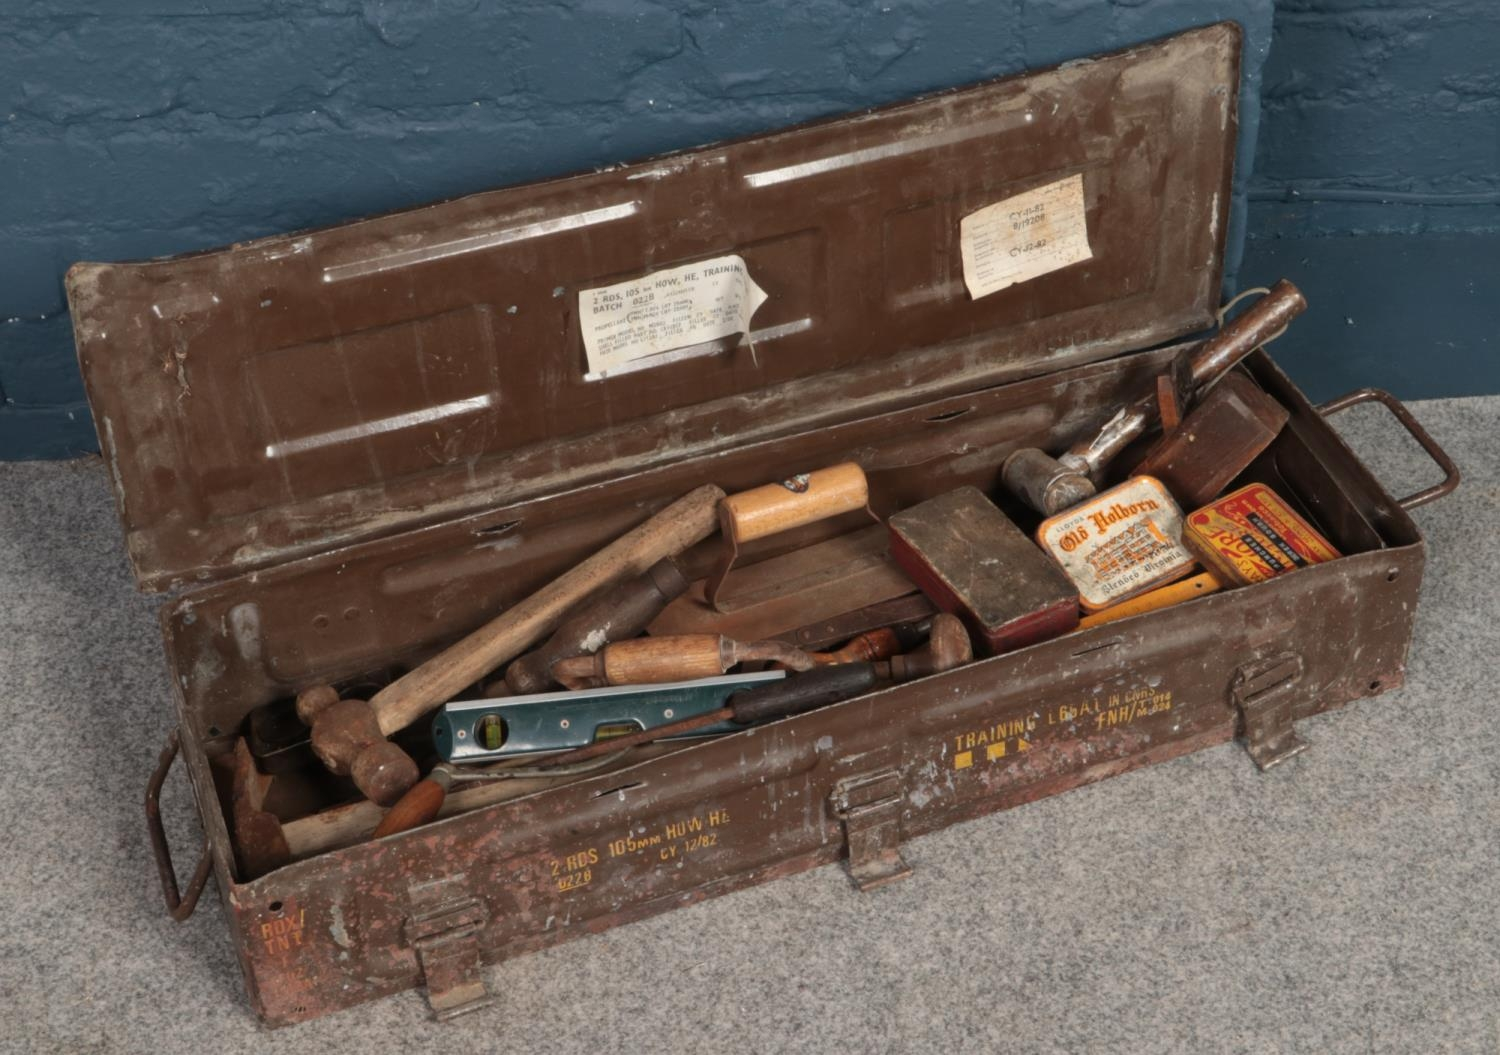 A metal tool case of vintage hand tools. Including hammers, saws, hand crack screwdrivers, wood